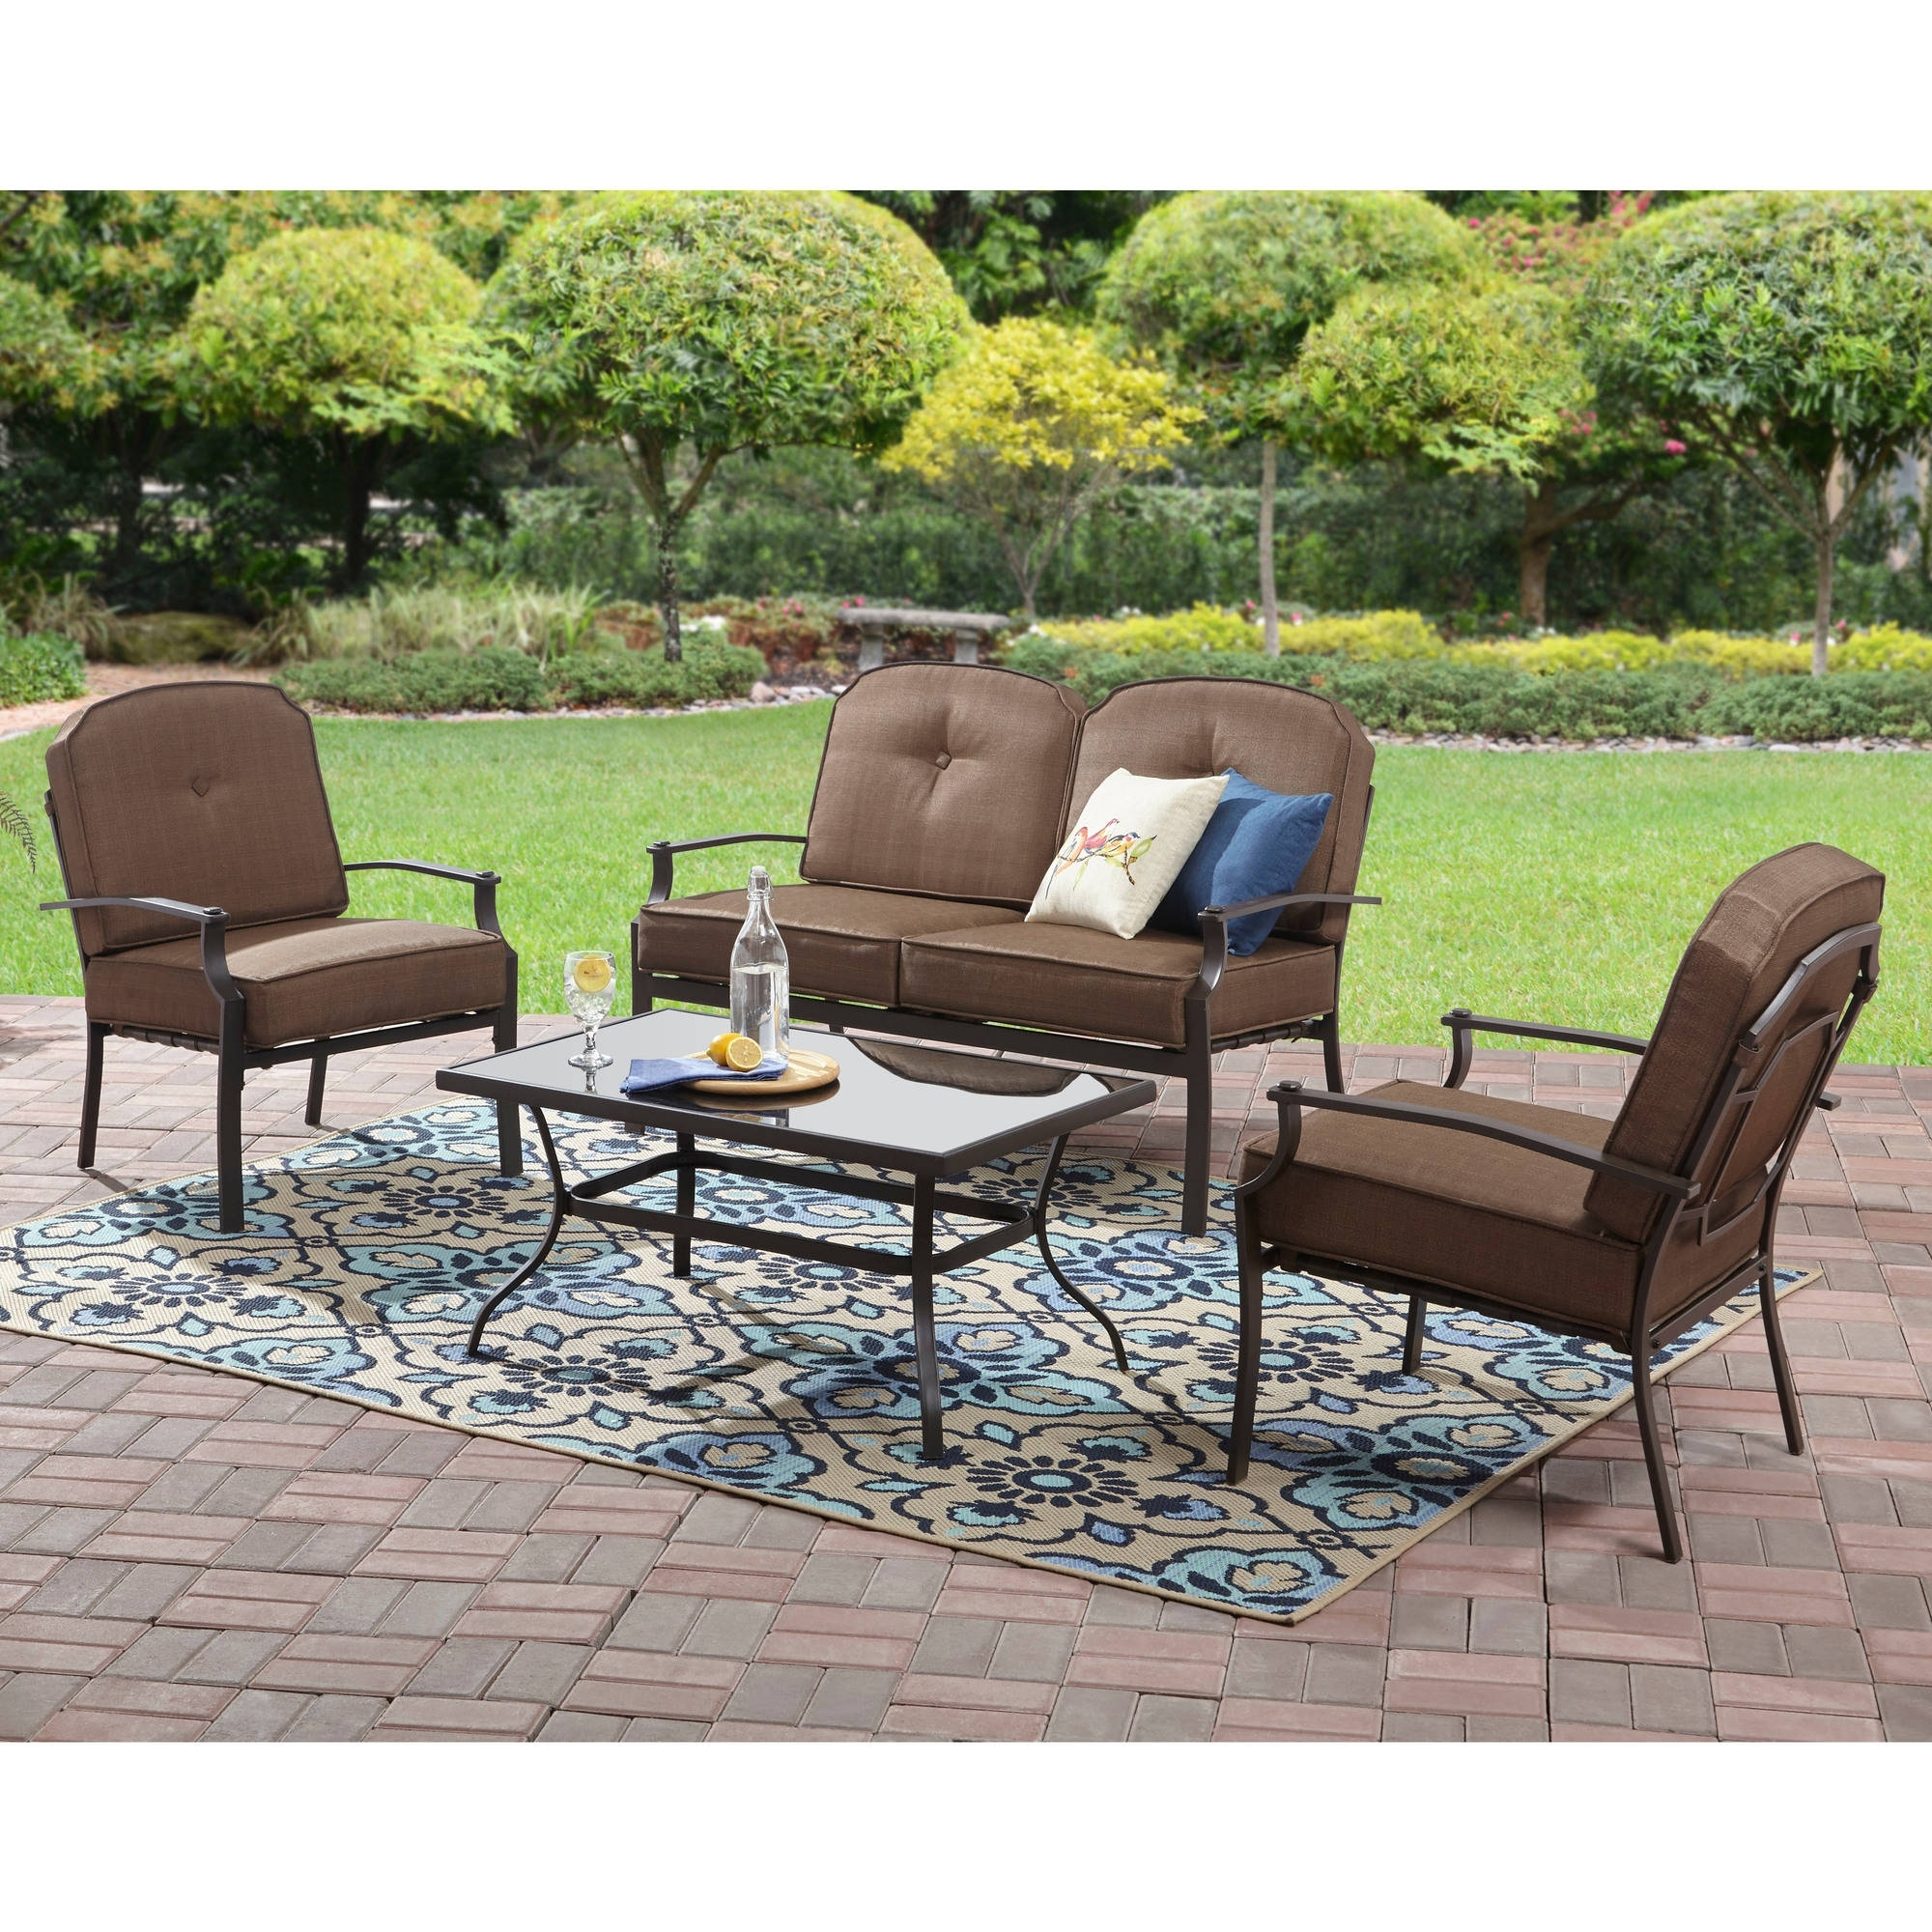 Latest Metal Patio Conversation Sets Throughout Mainstays Wentworth 4 Piece Patio Conversation Set, Seats  (View 7 of 20)